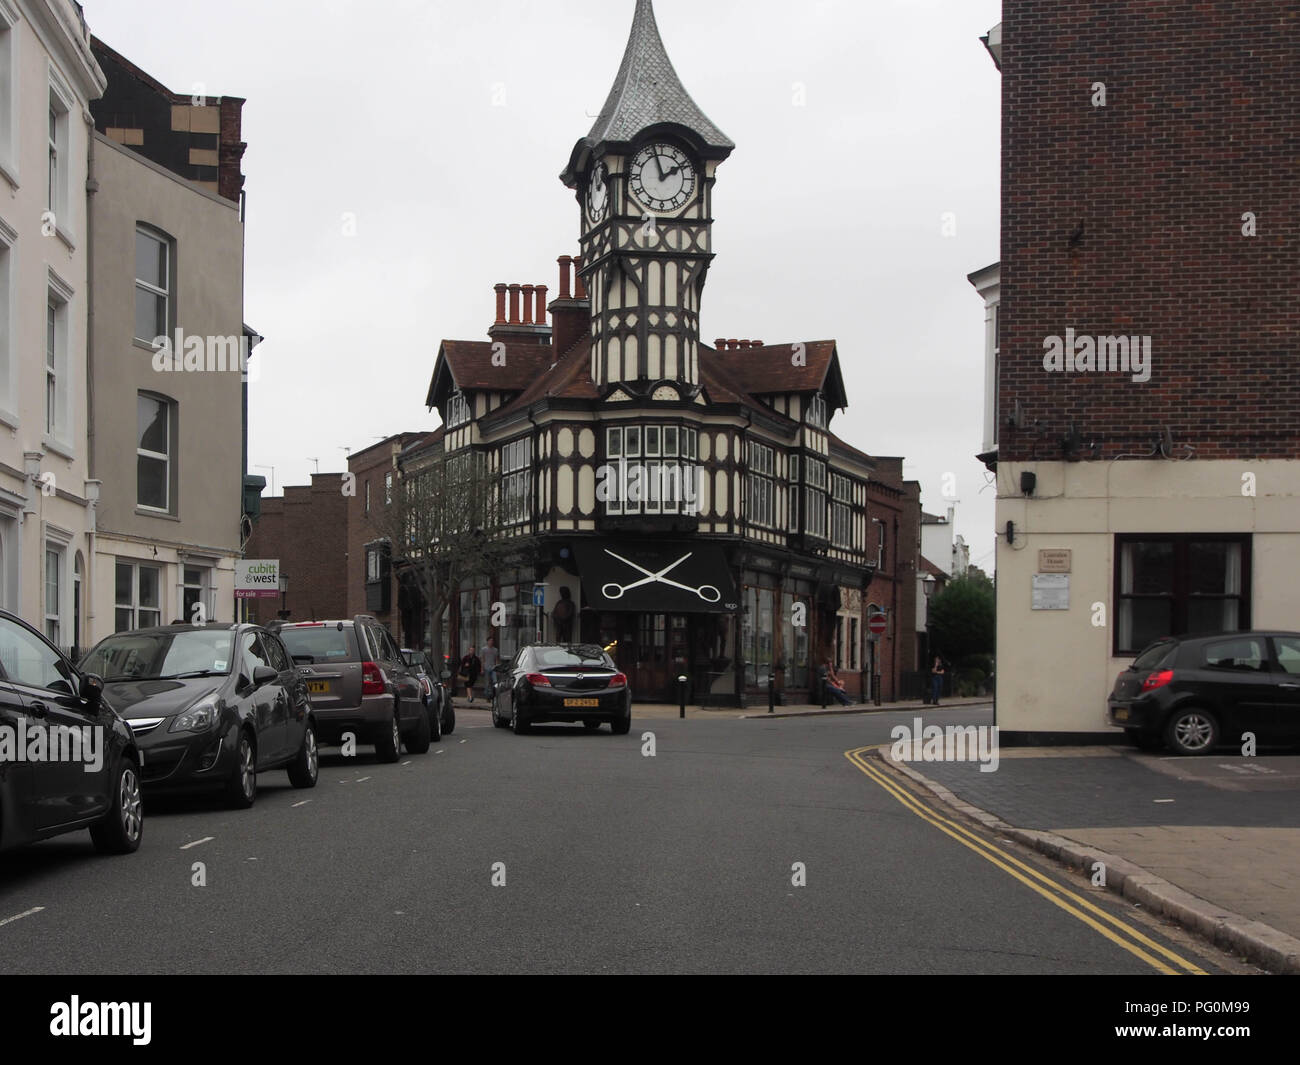 Castle Road, Southsea, Portsmouth, England, with the clock tower commisioned by Gales brewery and designed by architect J. W. Walmisley - Stock Image